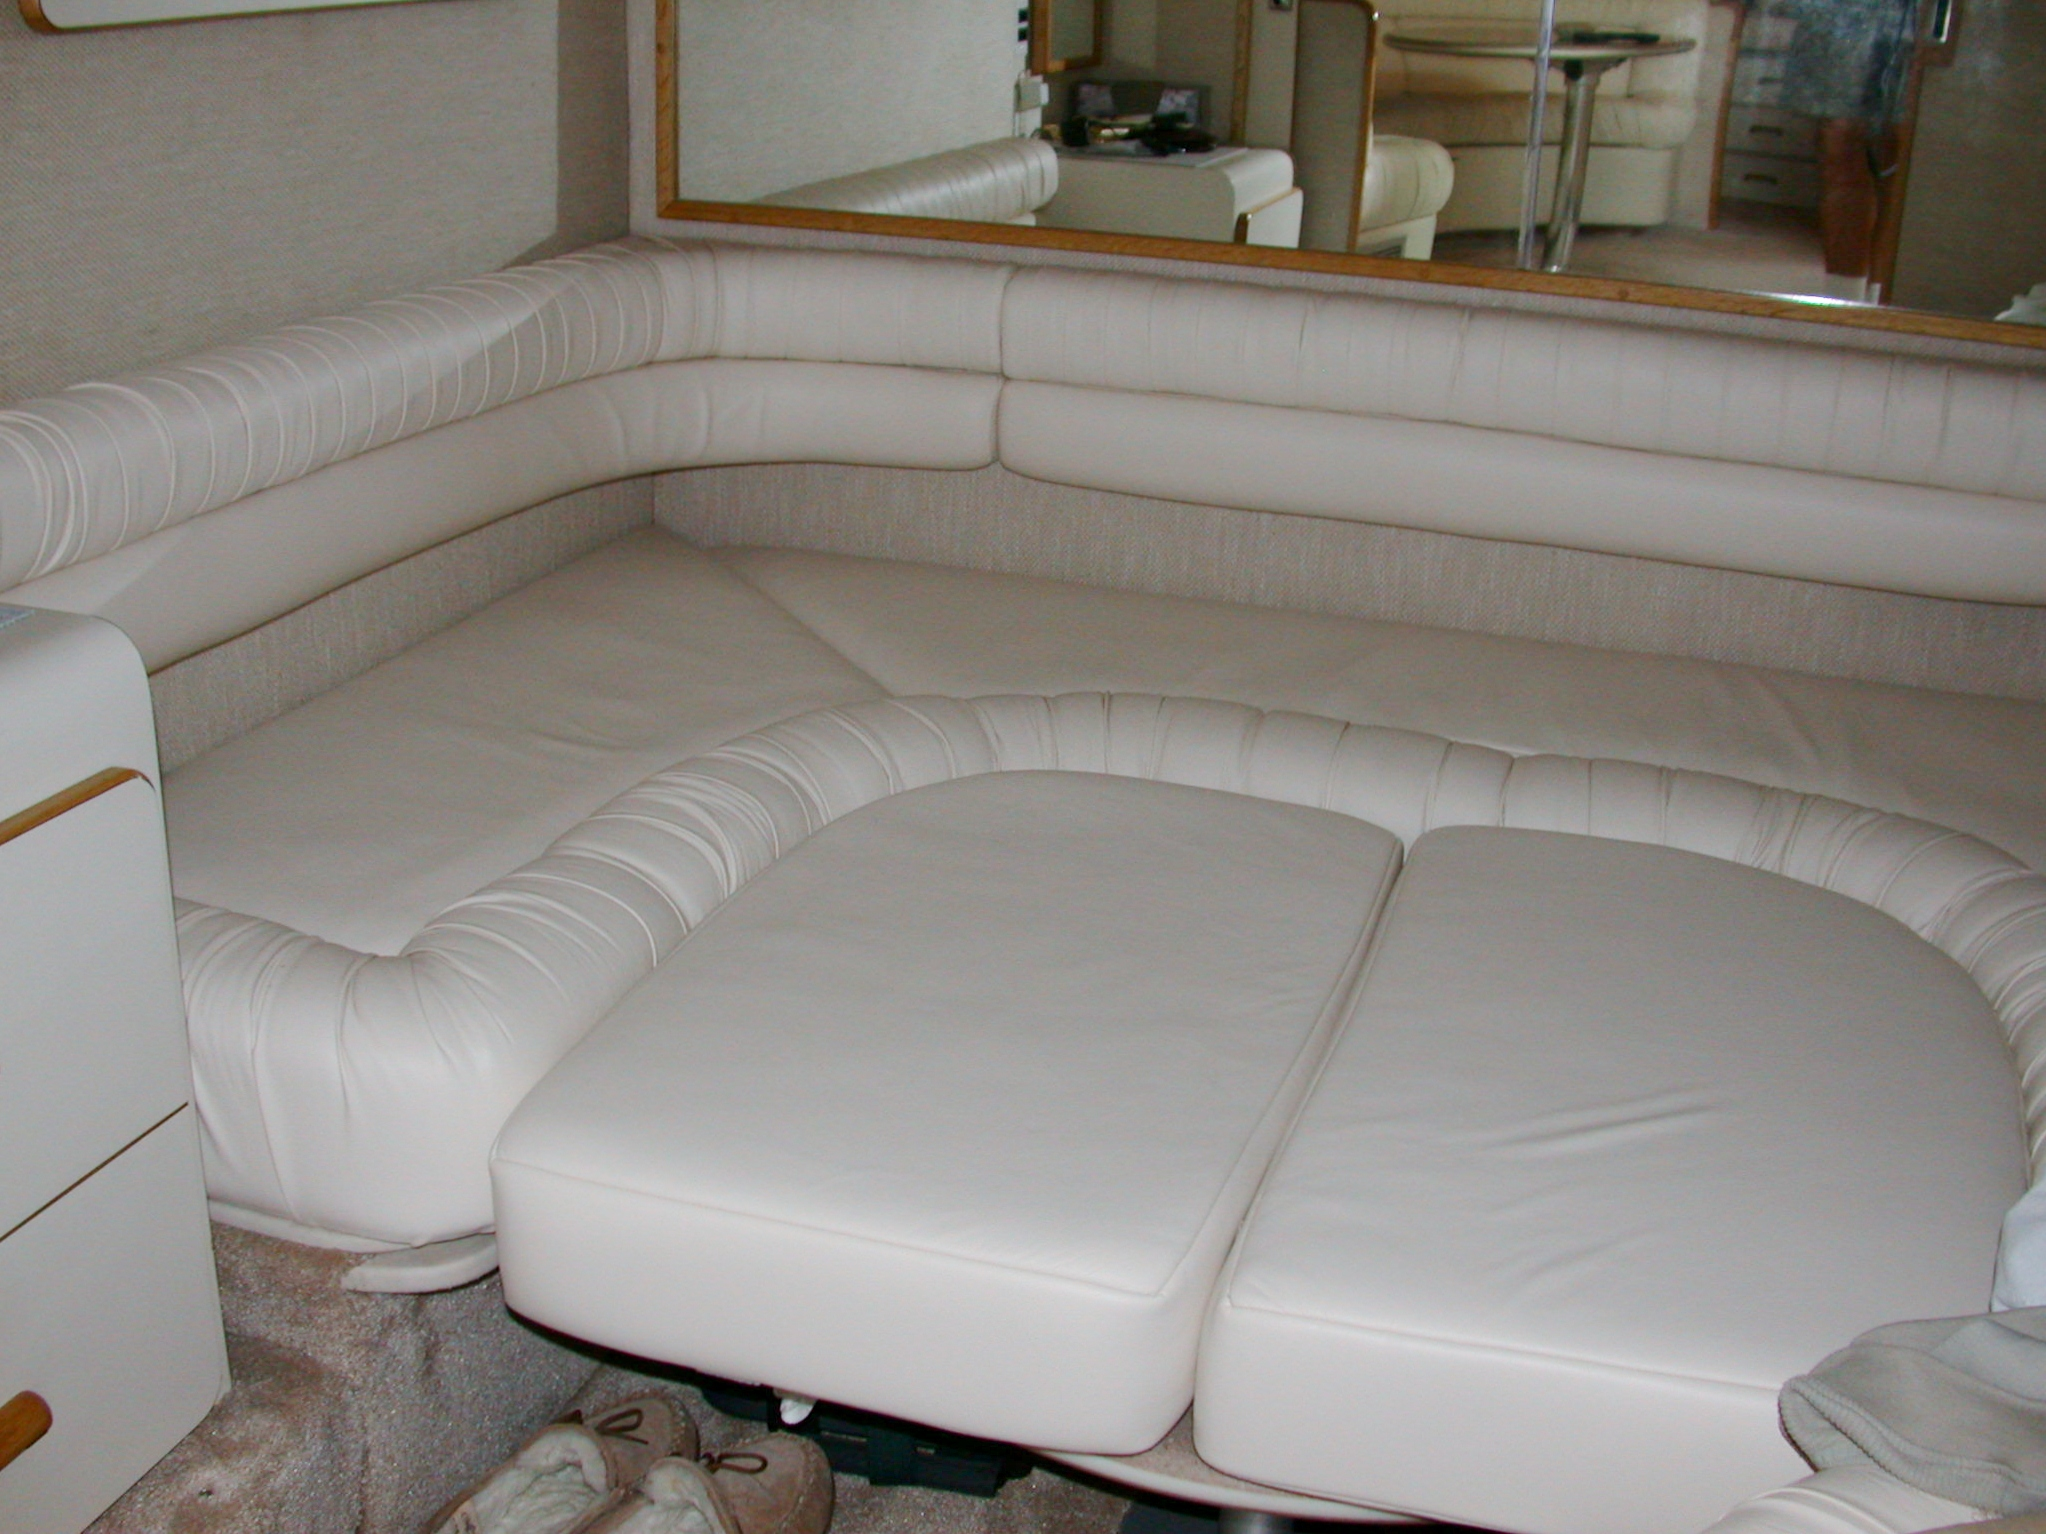 Custom Marine Interiors, Upholstery, and Carpeting: 440 Sea Ray Sundancer aft cabin with ultra leather upholstery and filler cushions